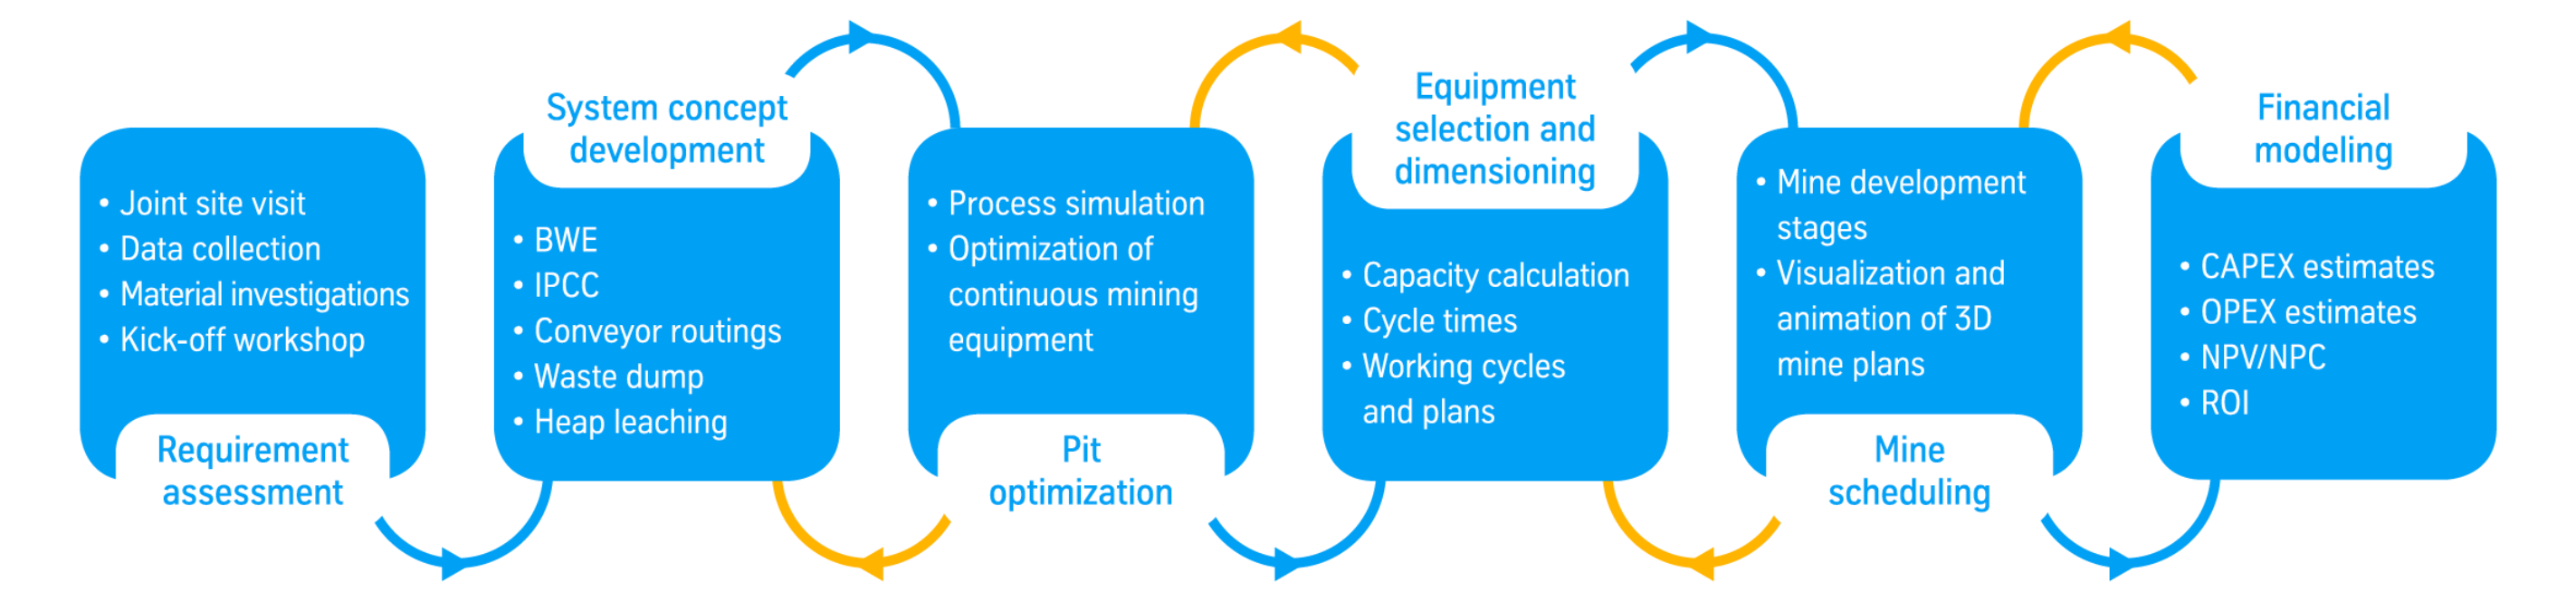 The scope of mine planning services at thyssenkrupp Industrial Solutions AG